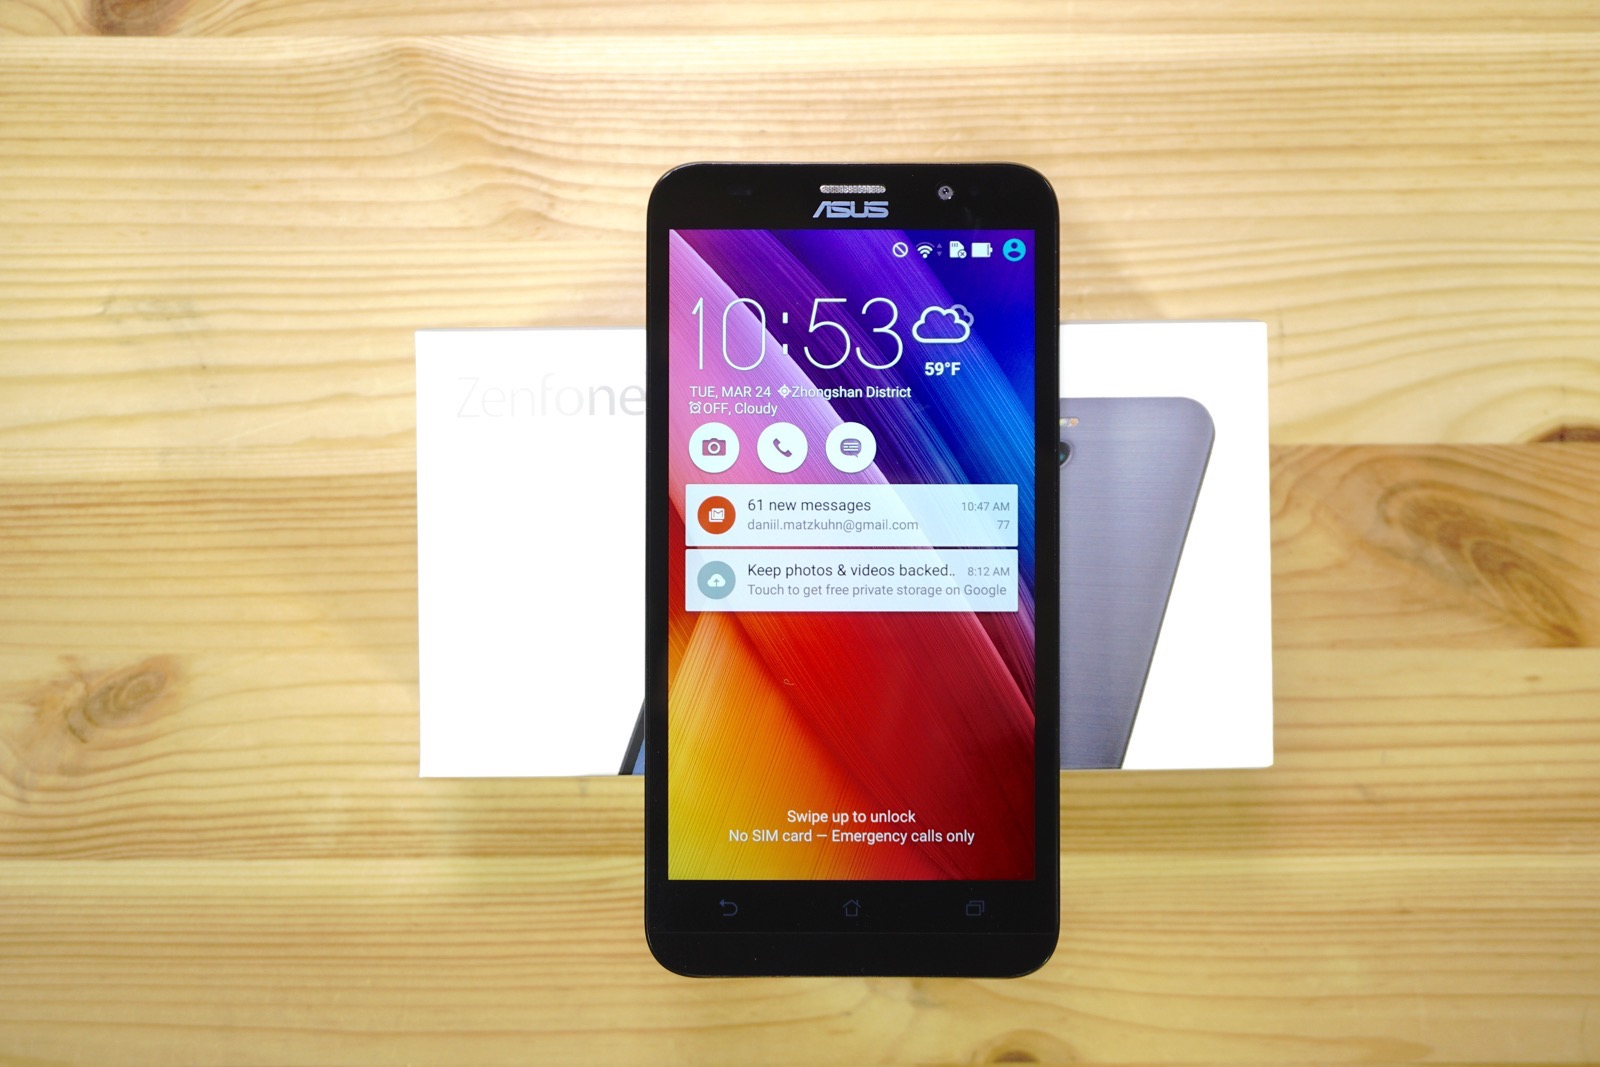 ASUS-Zenfone-2-ZE551ML-Unboxing